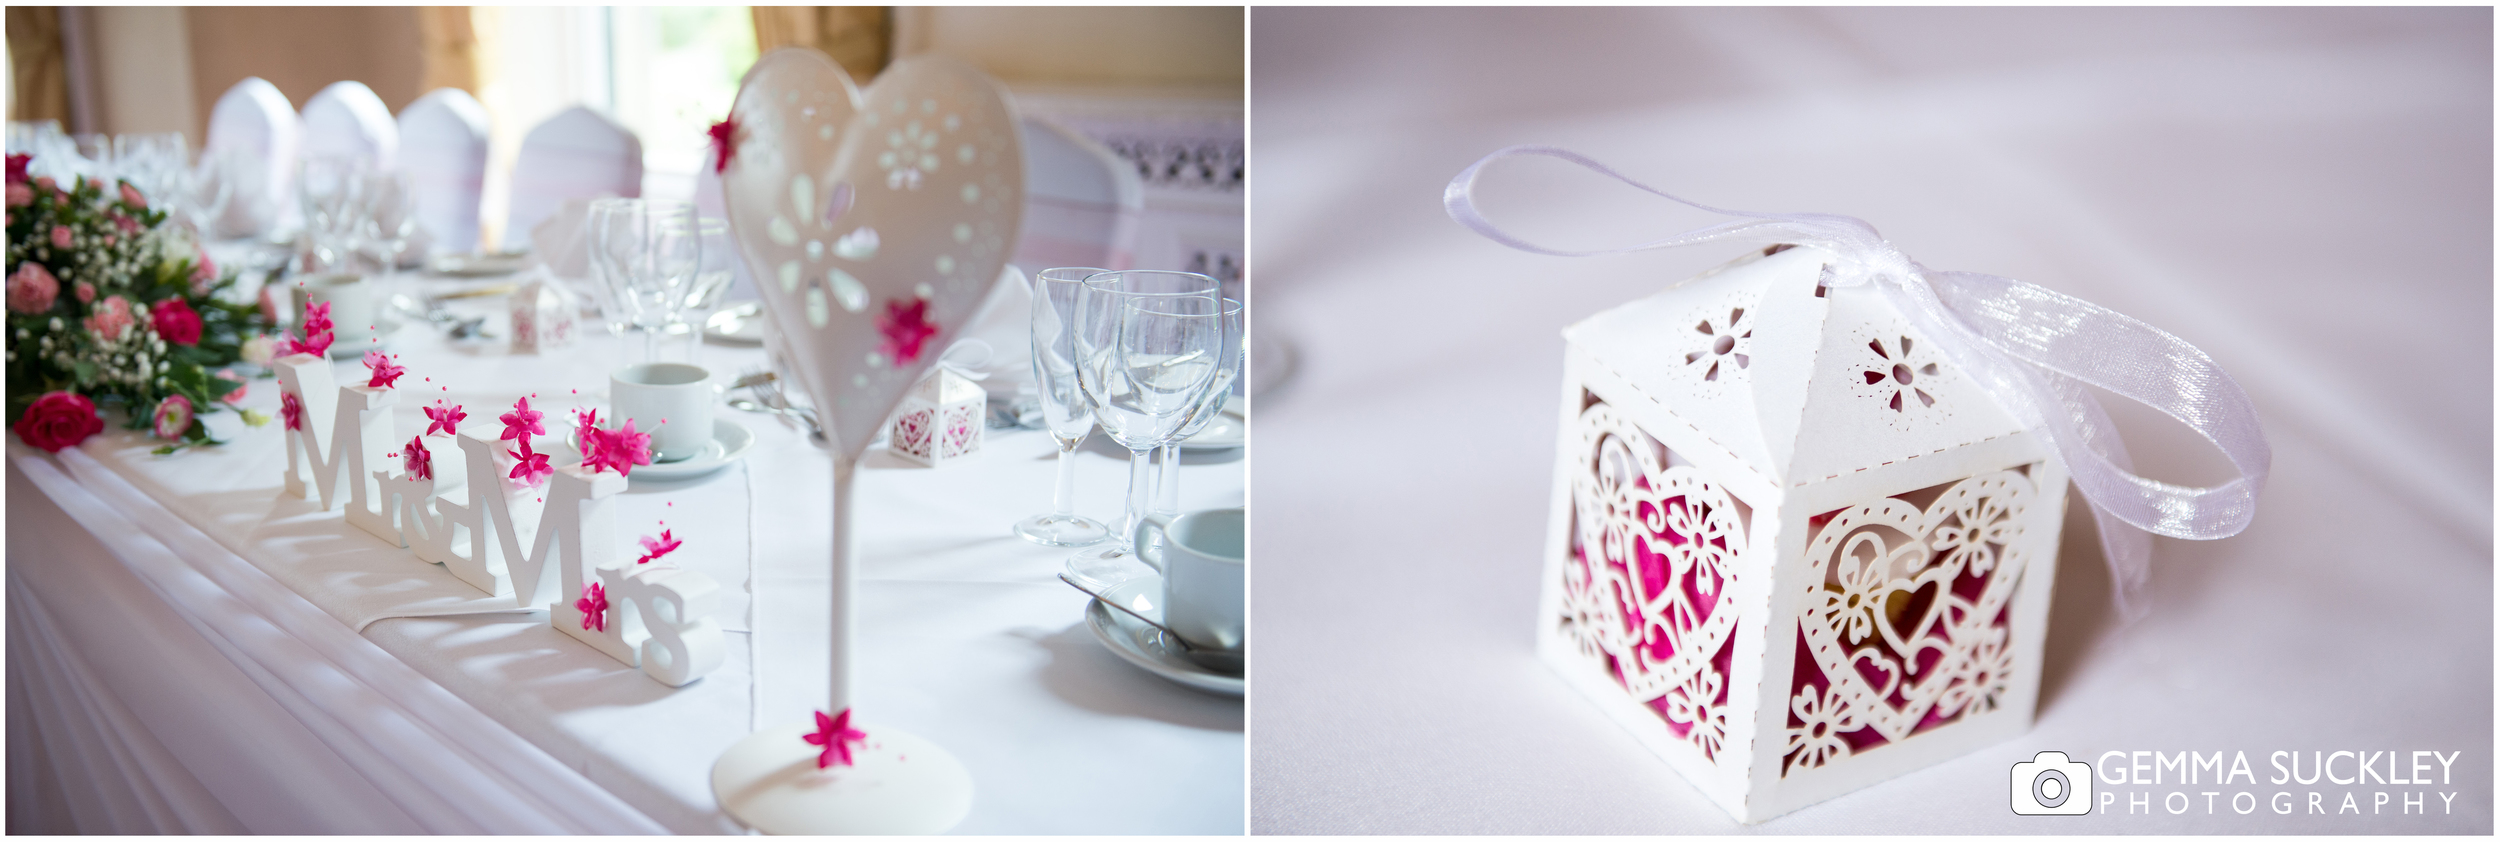 Wedding Favours Ideas — Gemma Suckley Photography